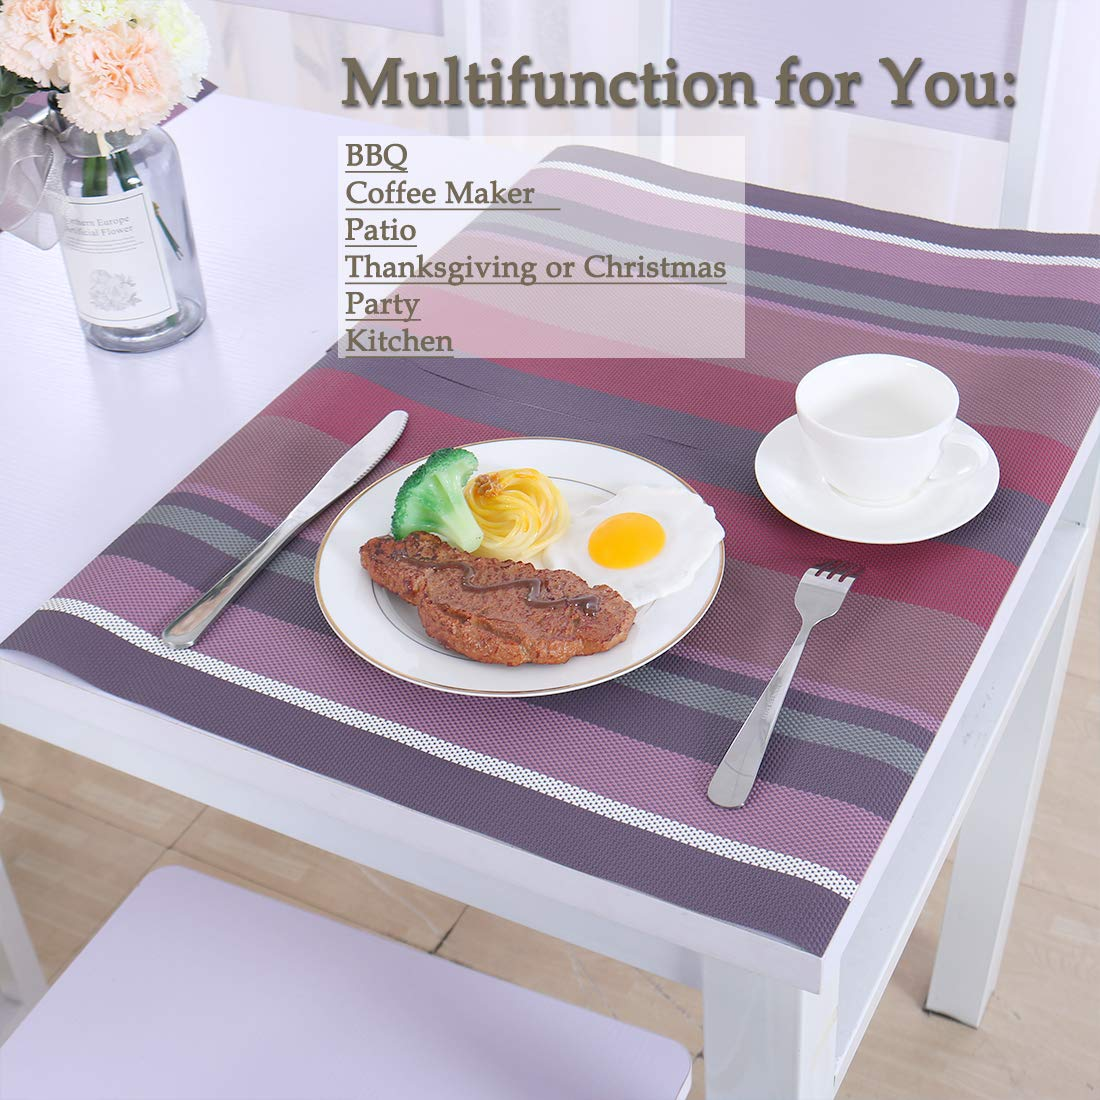 Heat-Resistant Table Mats PVC Stain Resistant Non-Slip Washable Placemats for Dining Table Set of 4 uxcell Placemats B Gold